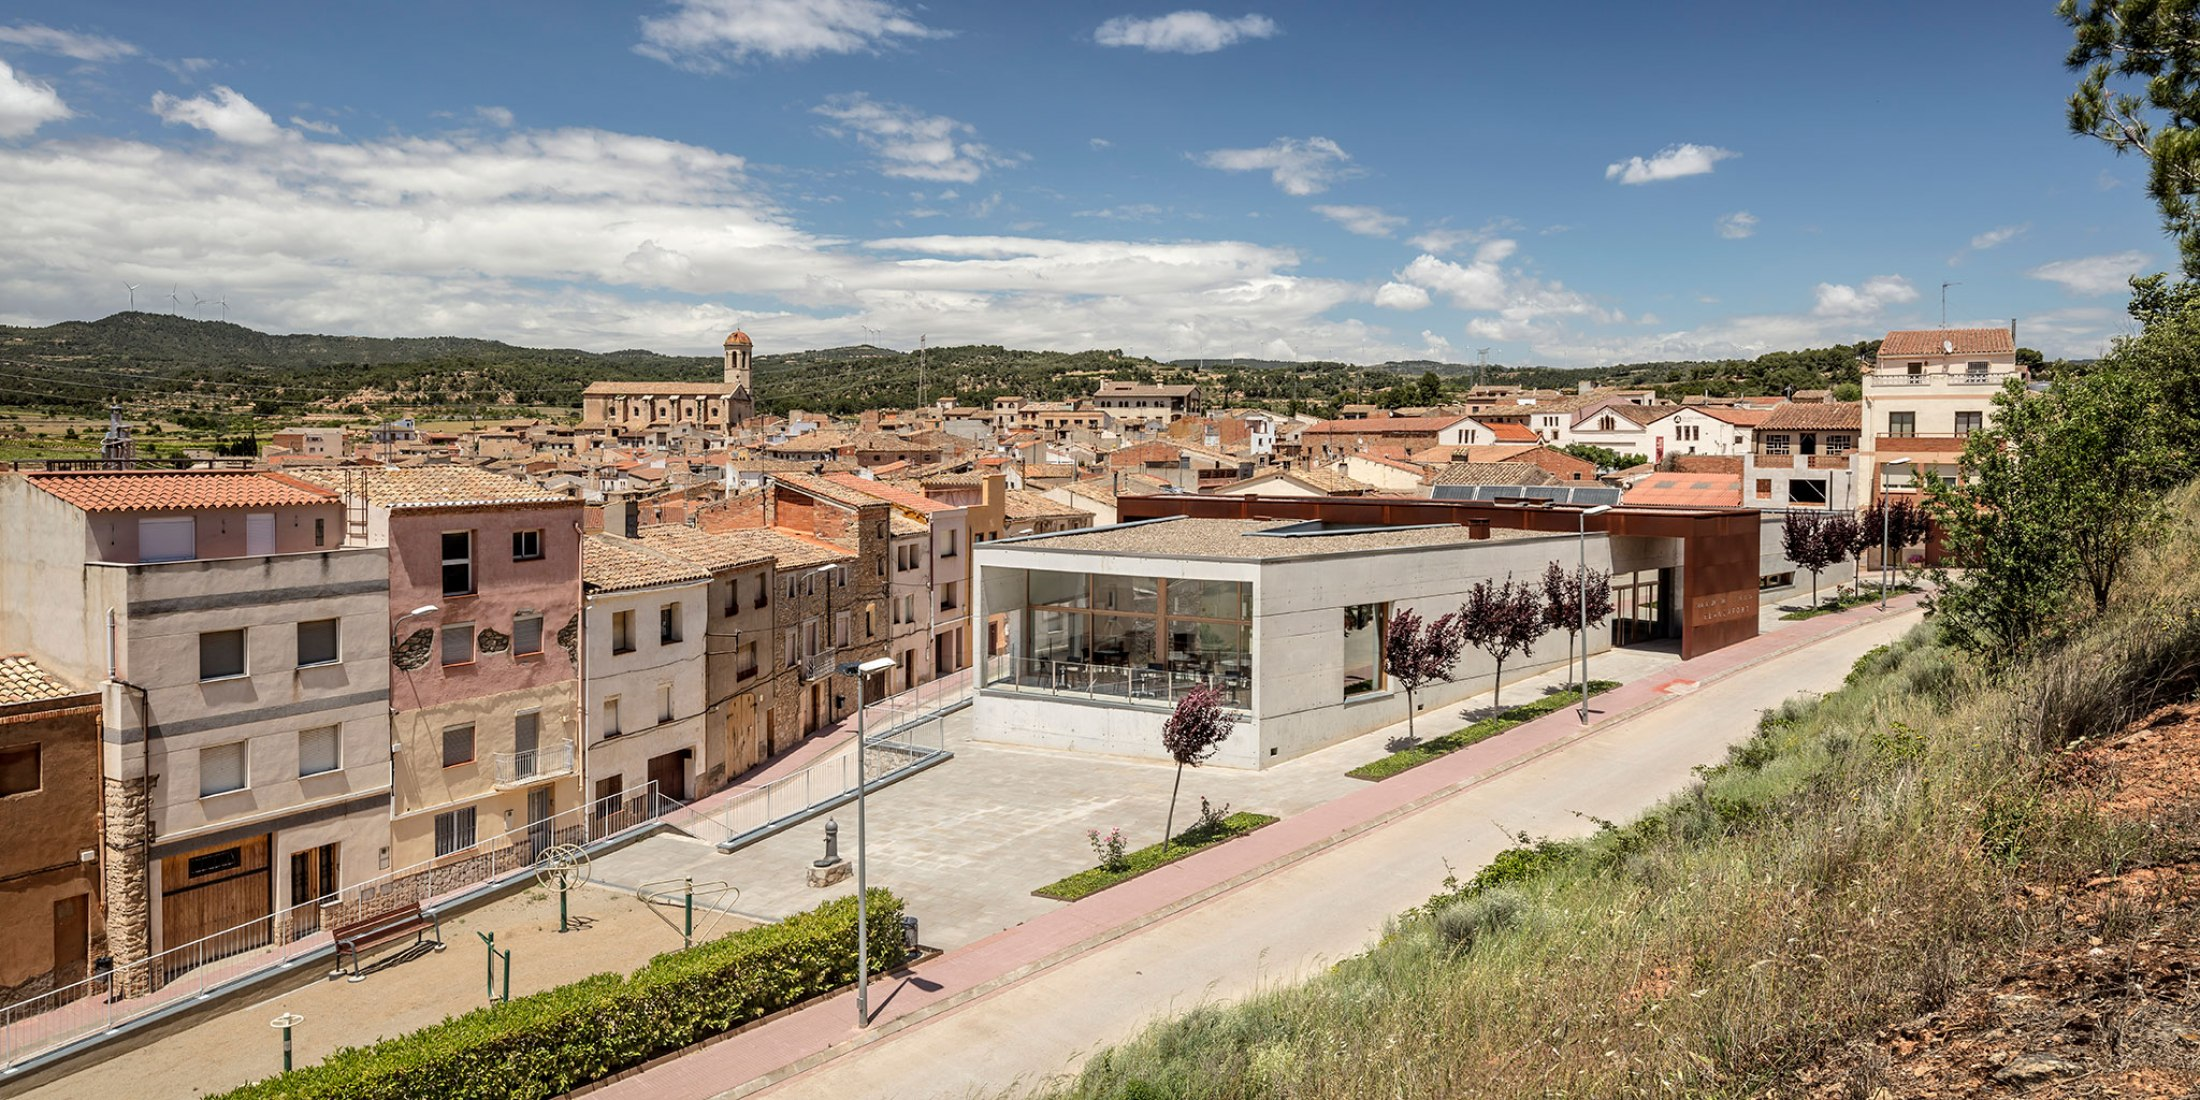 Day center and Home for the elderly of Blancafort by Guillem Carrera. Photograph by Adrià Goula